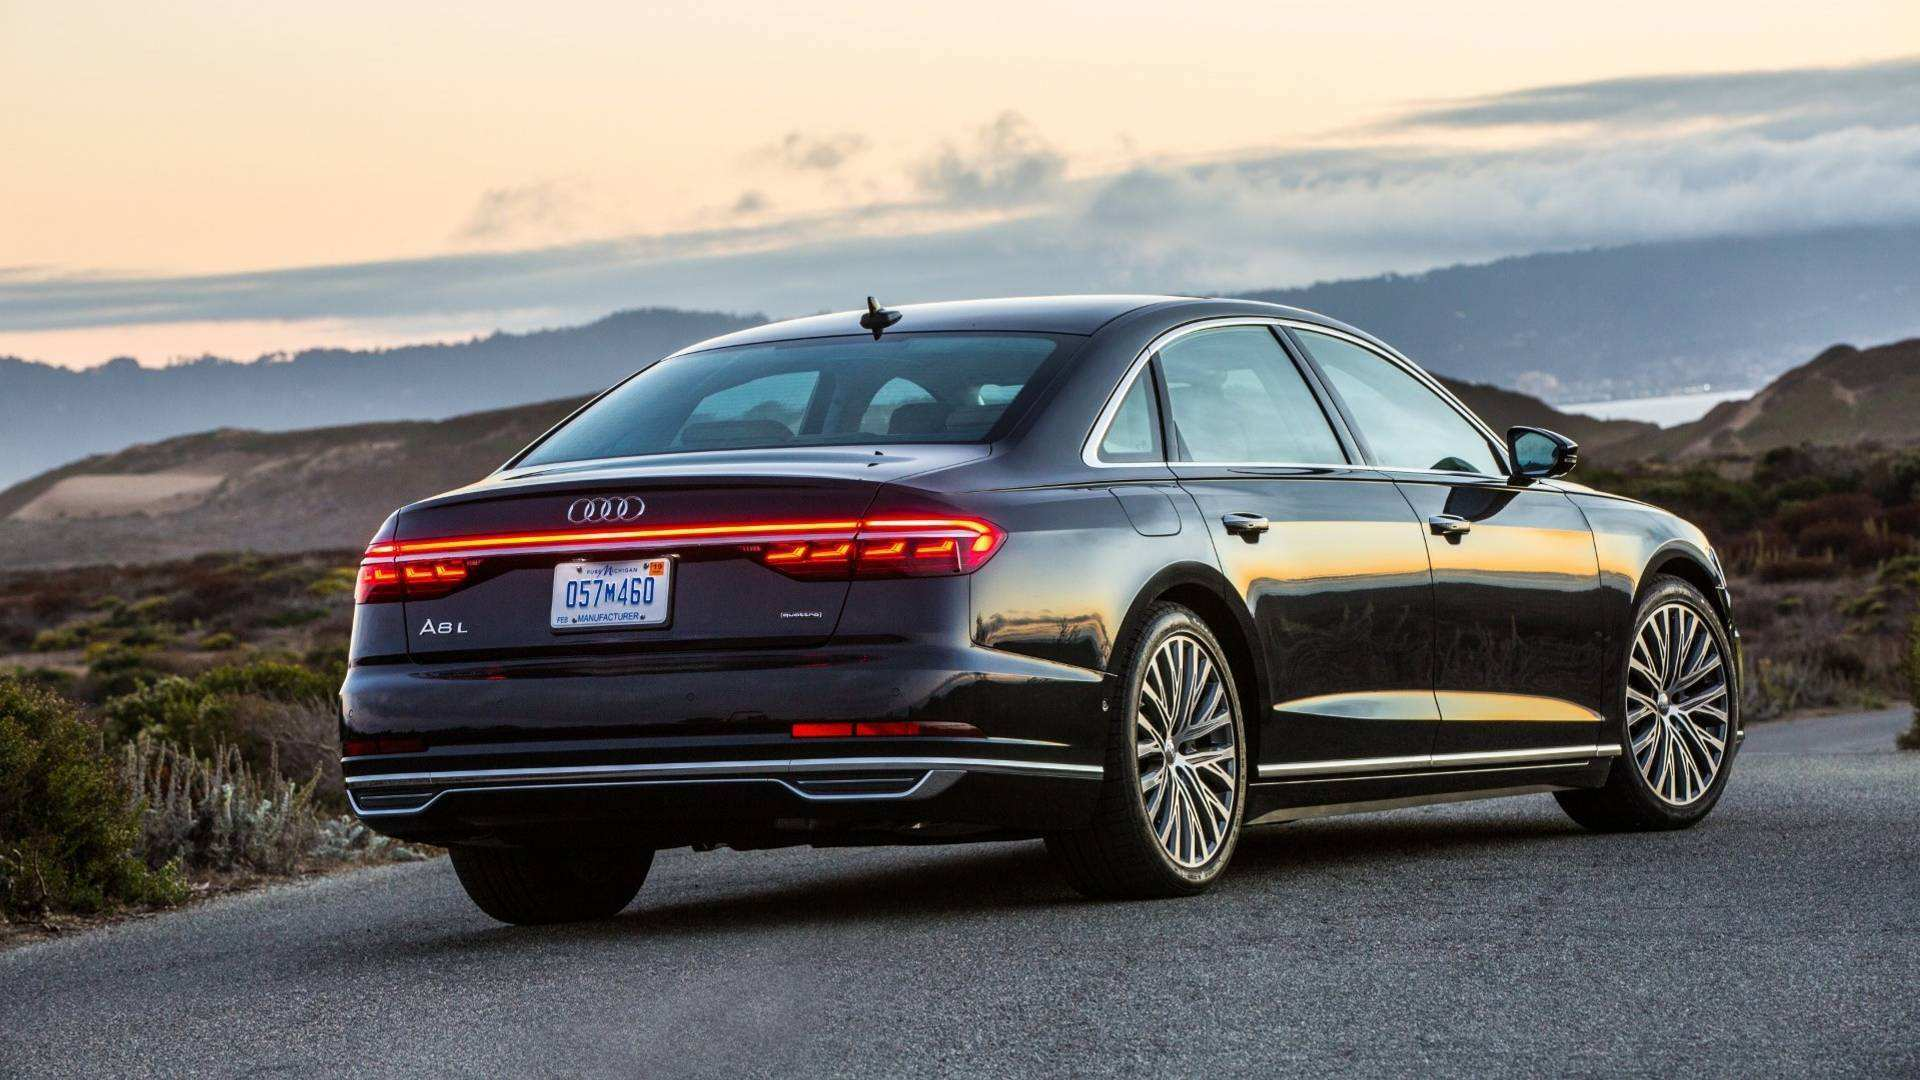 31 The Best 2019 Audi A8 L Photos